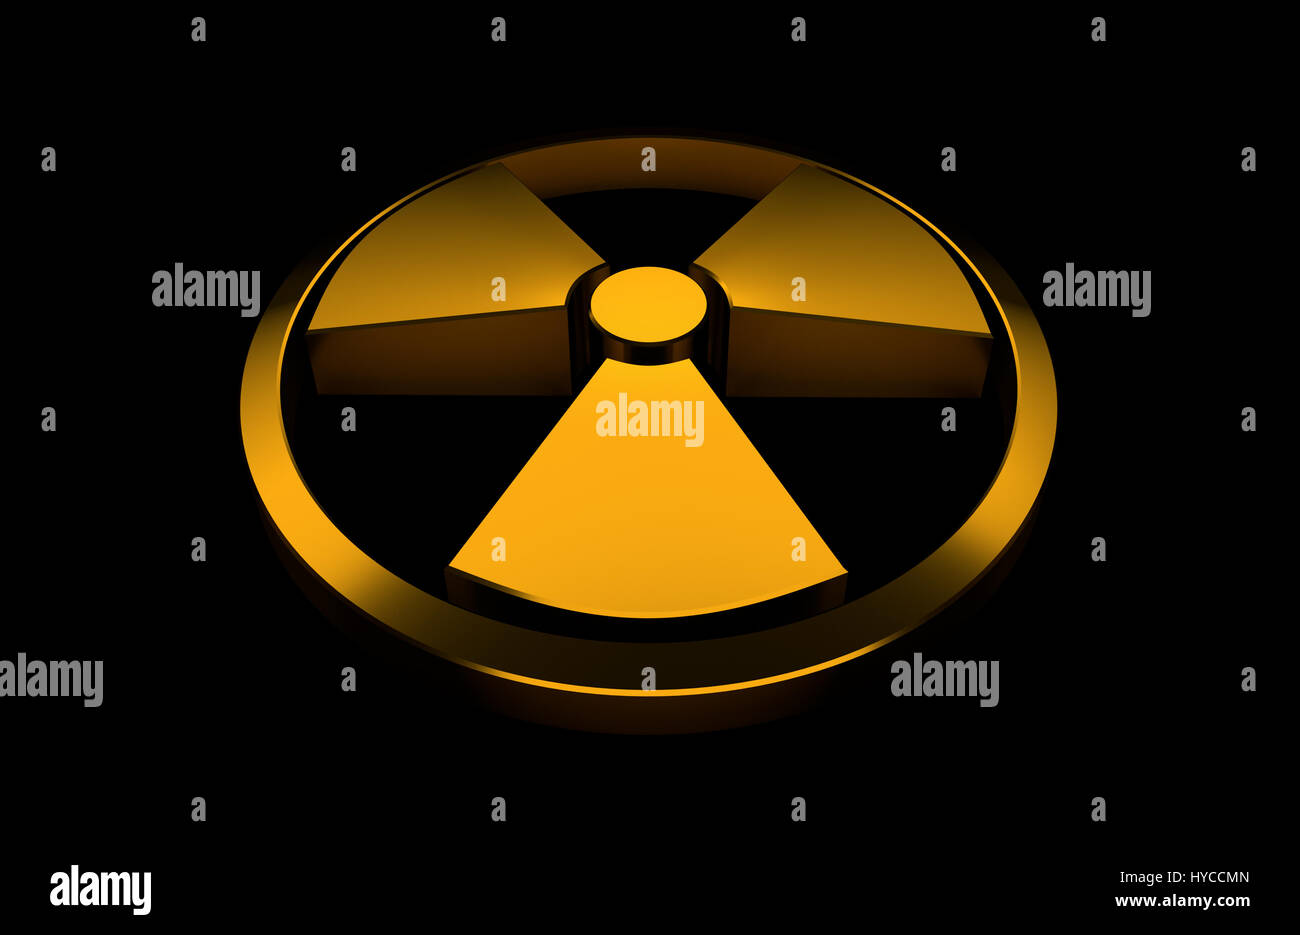 Nuclear symbol. Orange glossy object isolated on the black background. 3D render illustration. Stock Photo